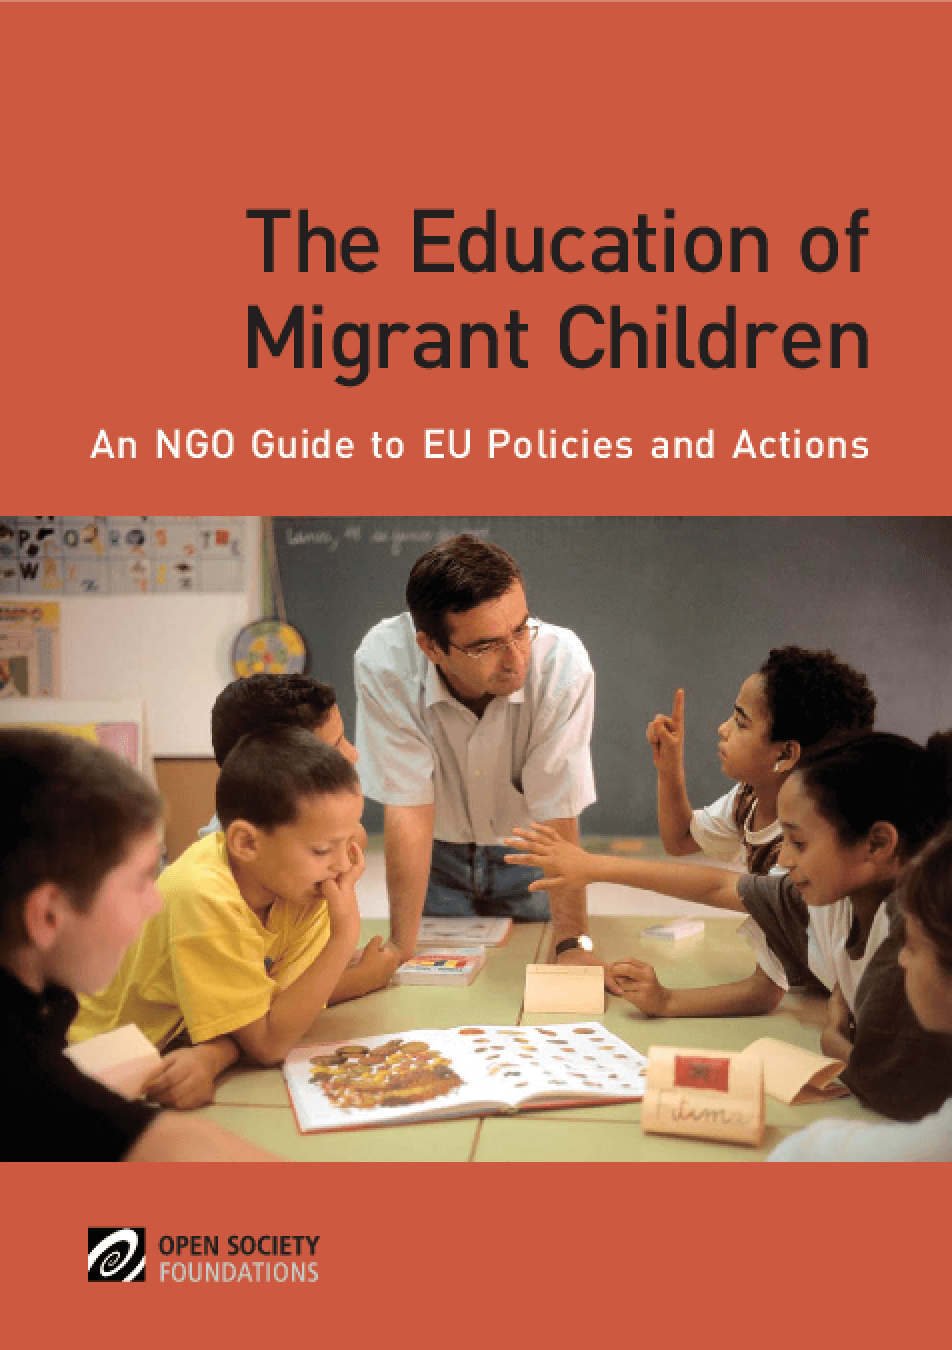 The Education of Migrant Children: An NGO Guide to EU Policies and Actions